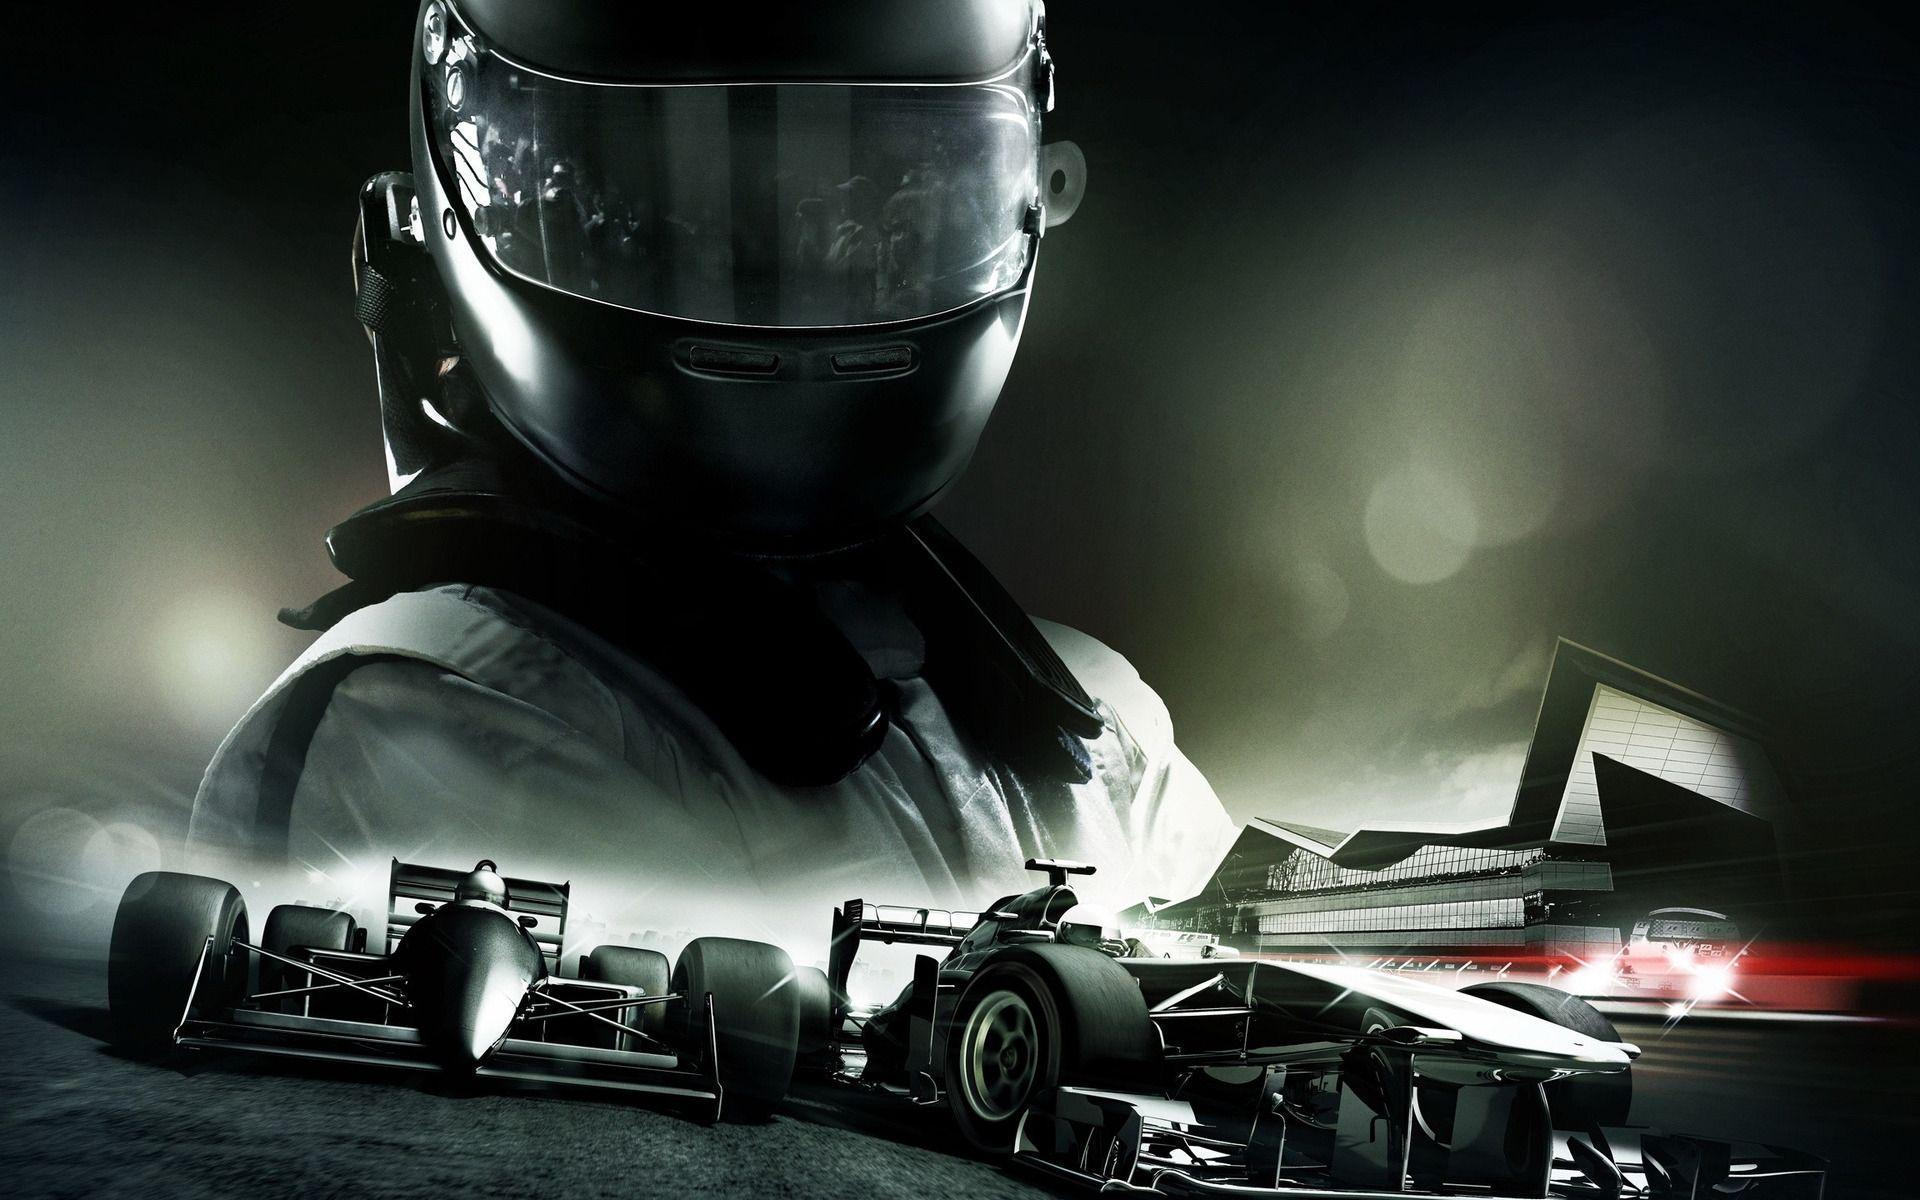 1920x1080 Wallpapers HD F1 2017 - Wallpaper Cave Race 2 Wallpapers Hd